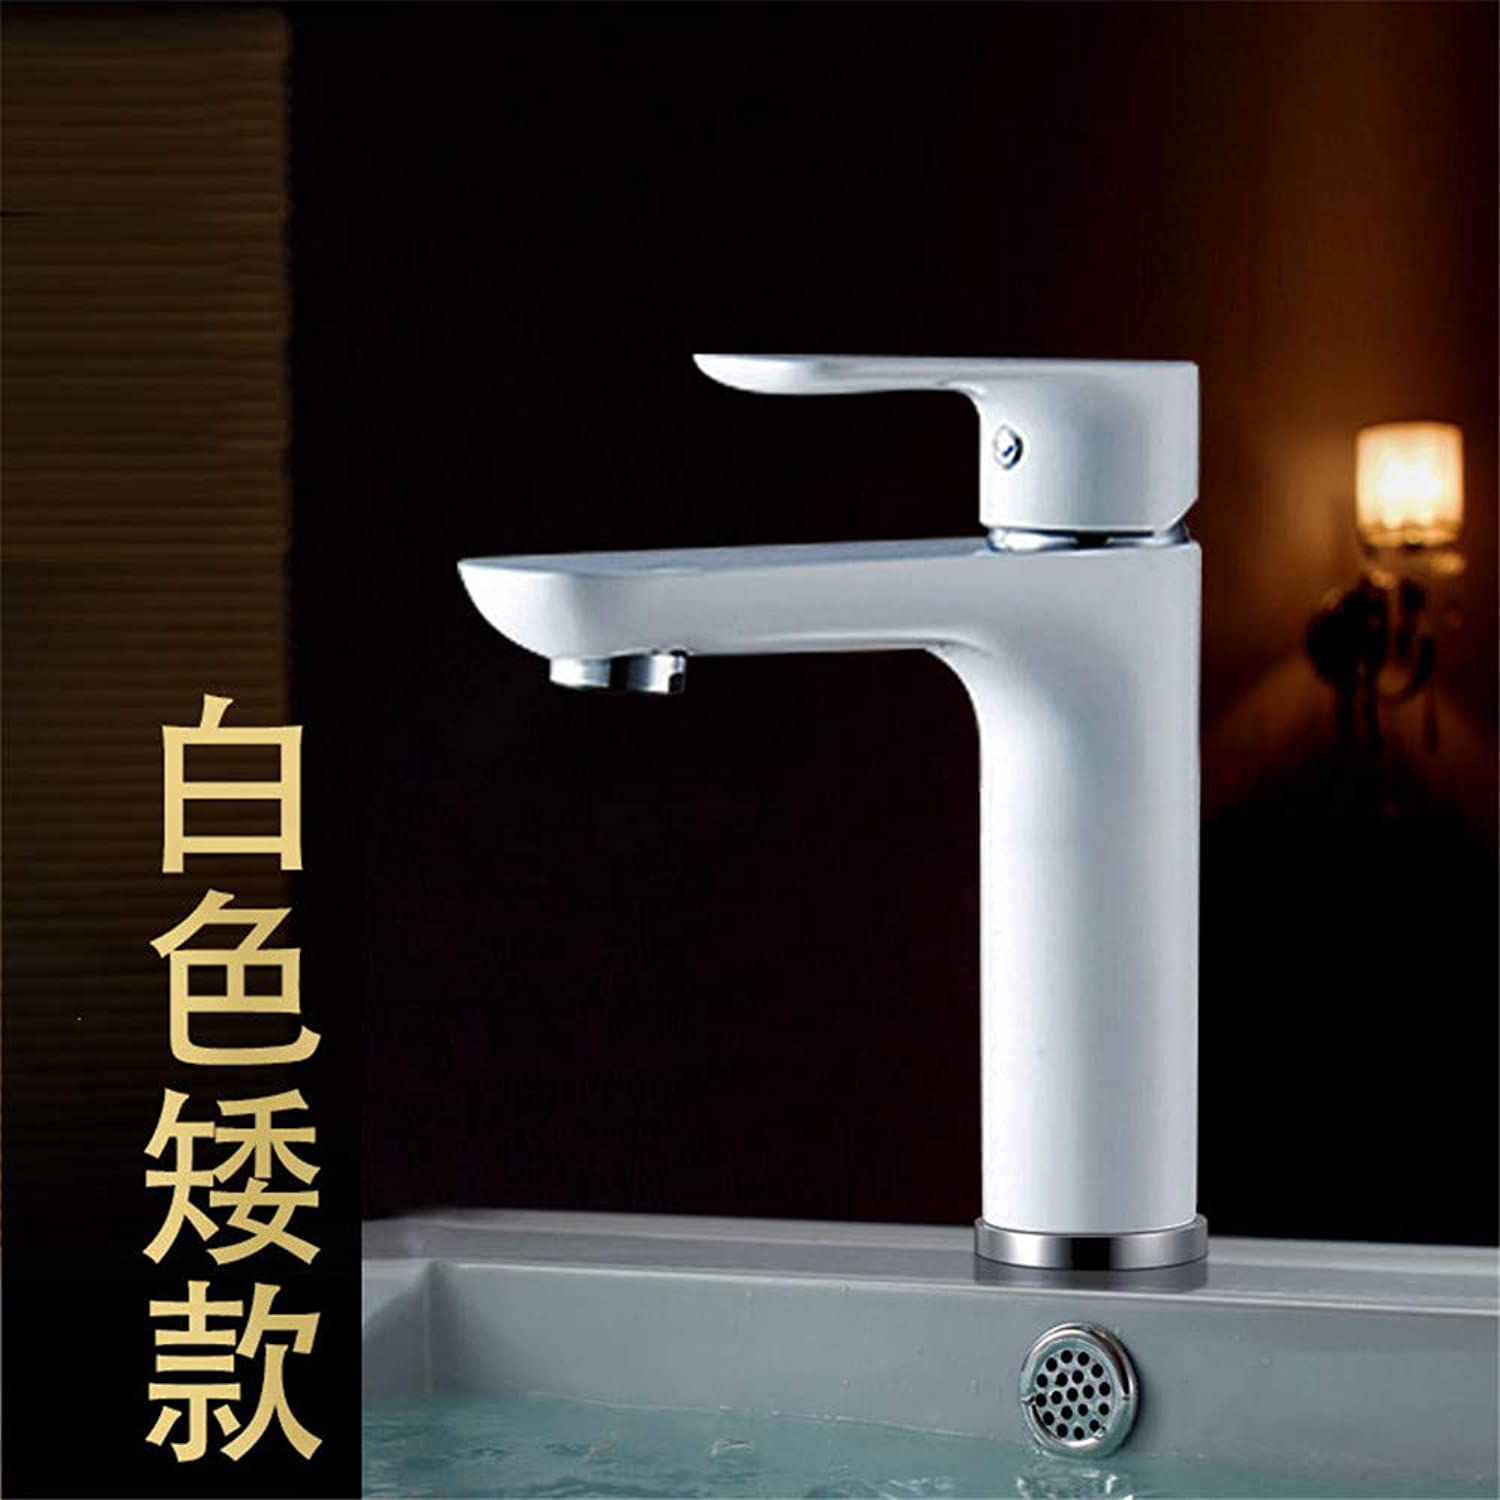 Guolaoer Copper Single Hole Hot And Cold Water Faucet Heightened???White